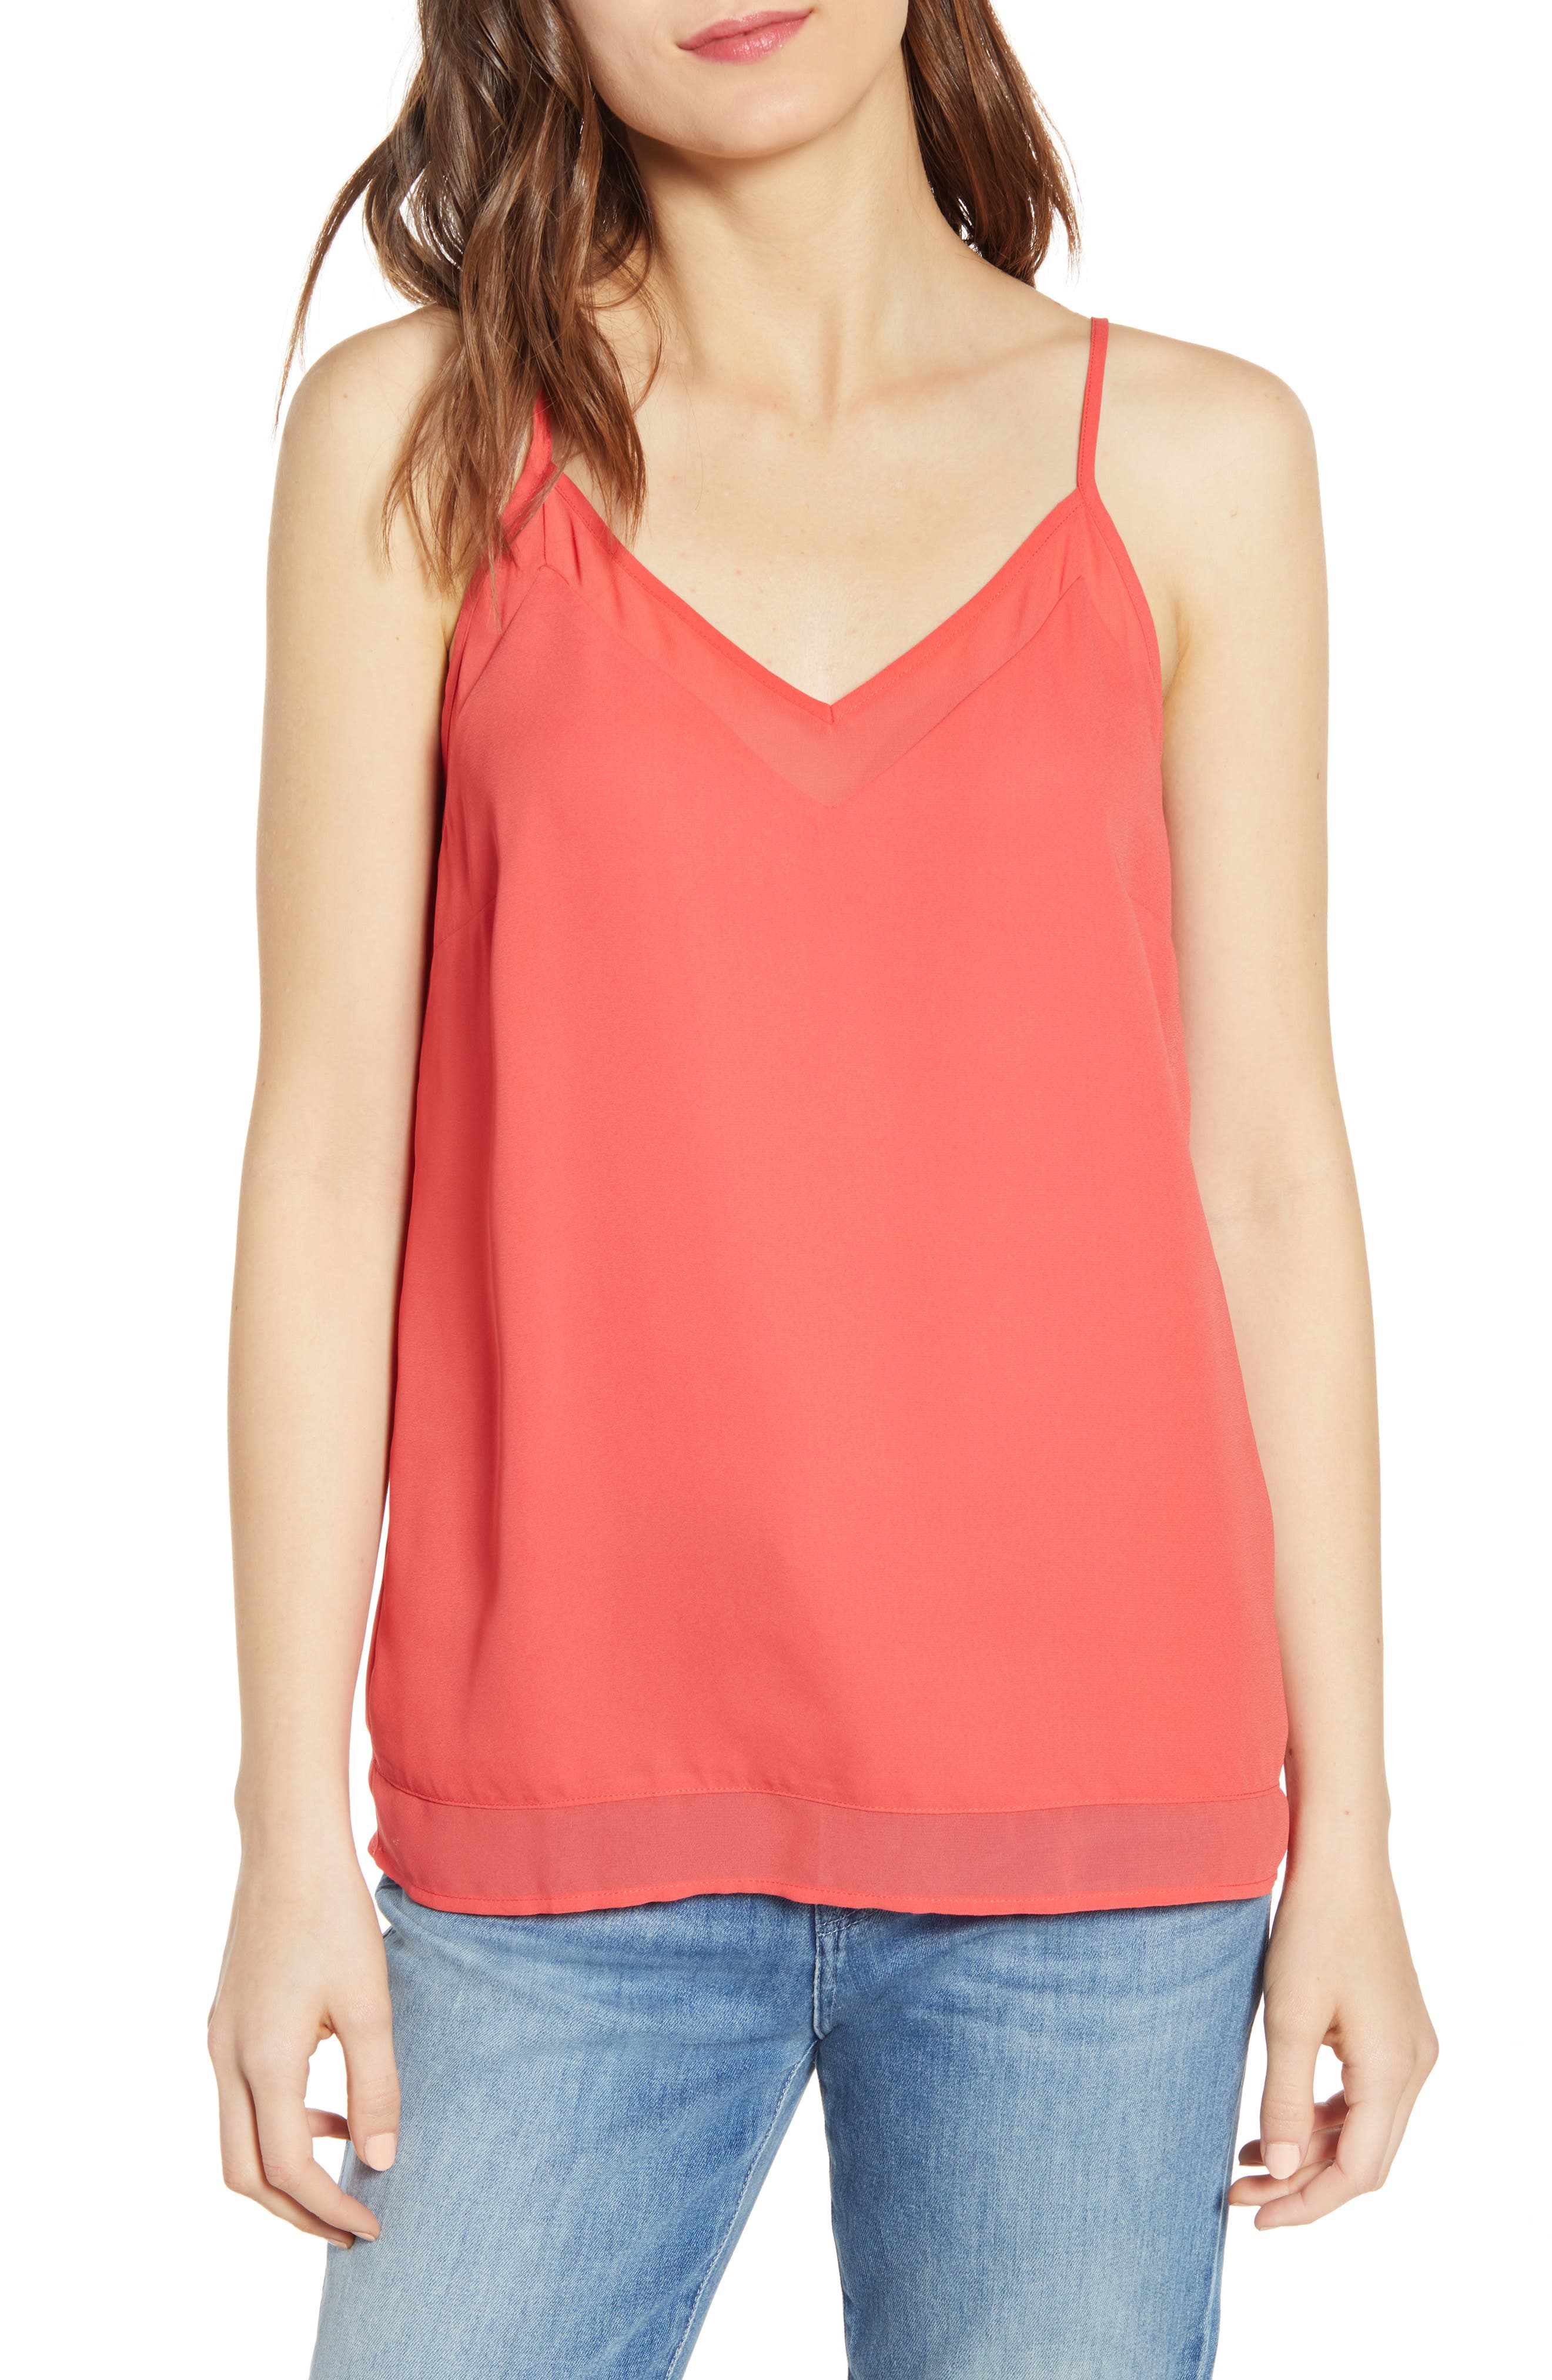 Chelsea28 Illusion Camisole, Red